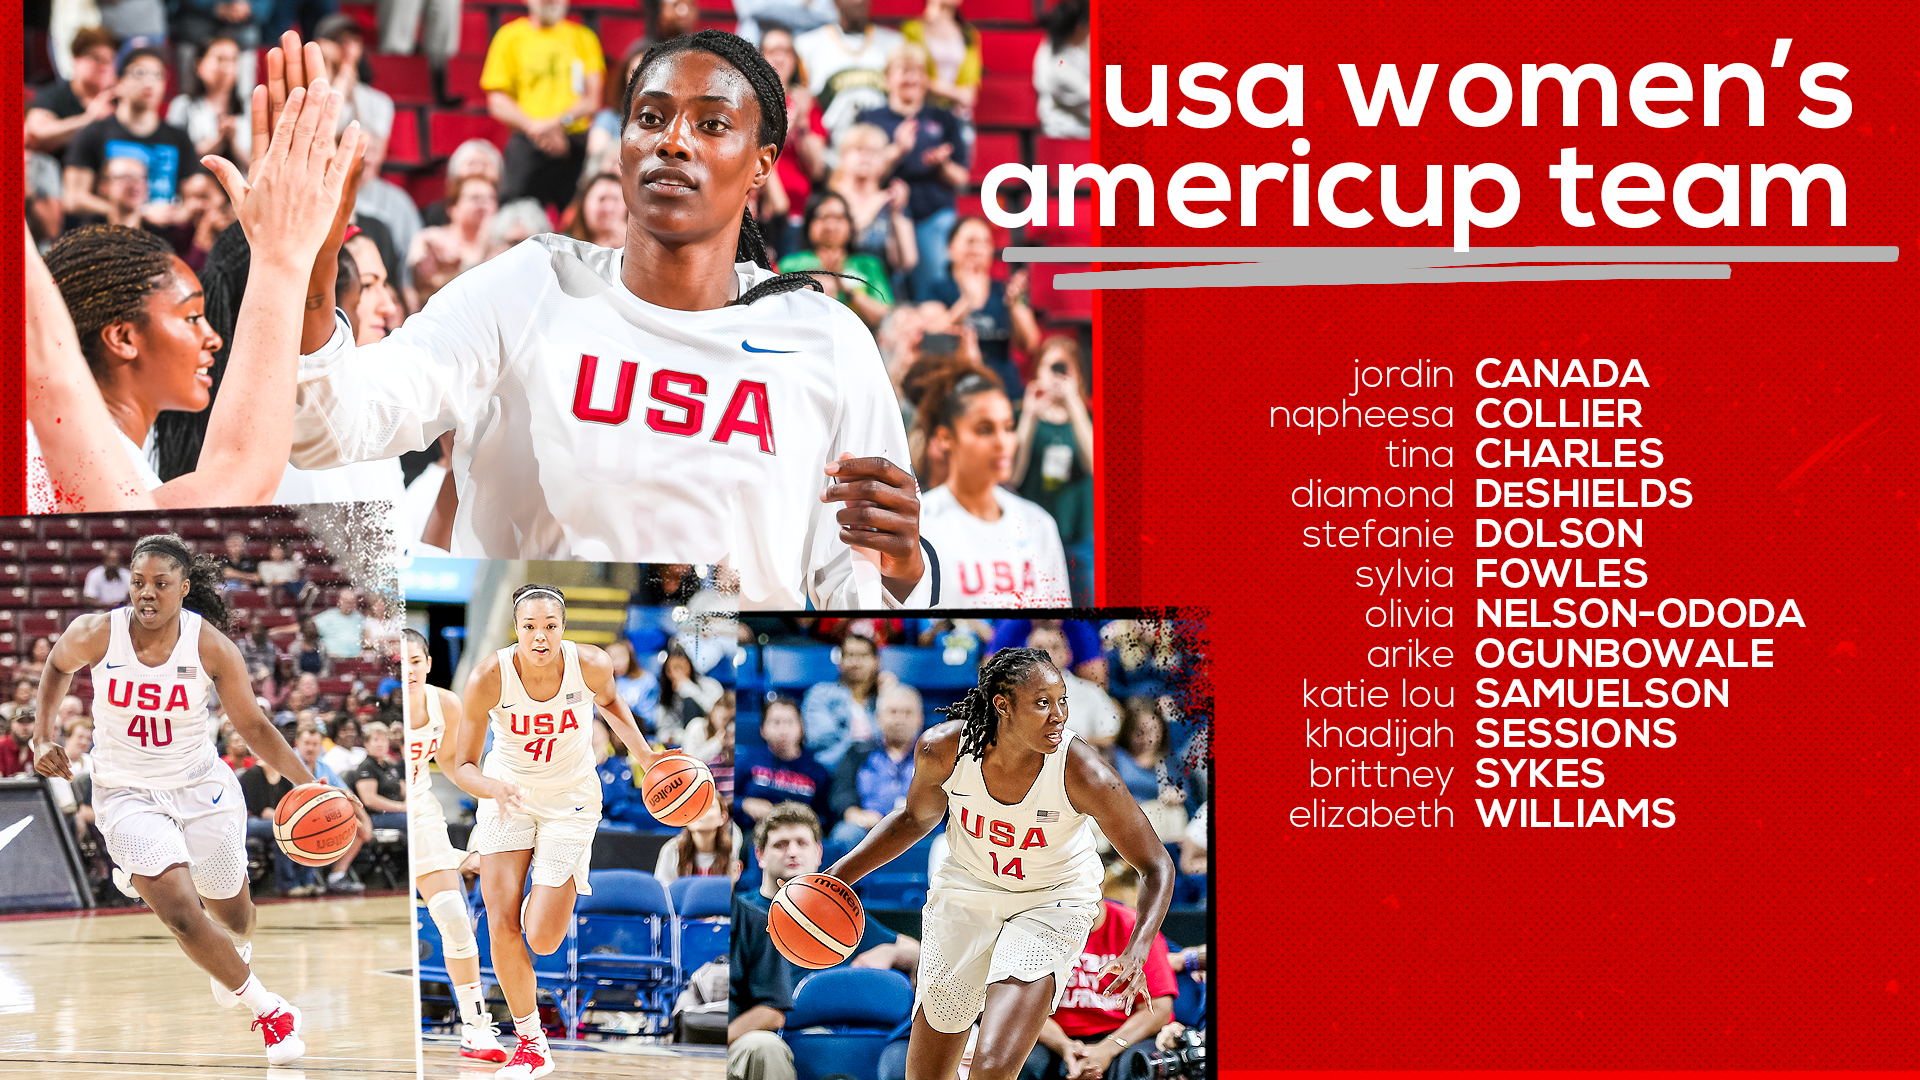 Gold Medalists Headline USA Women's AmeriCup Team